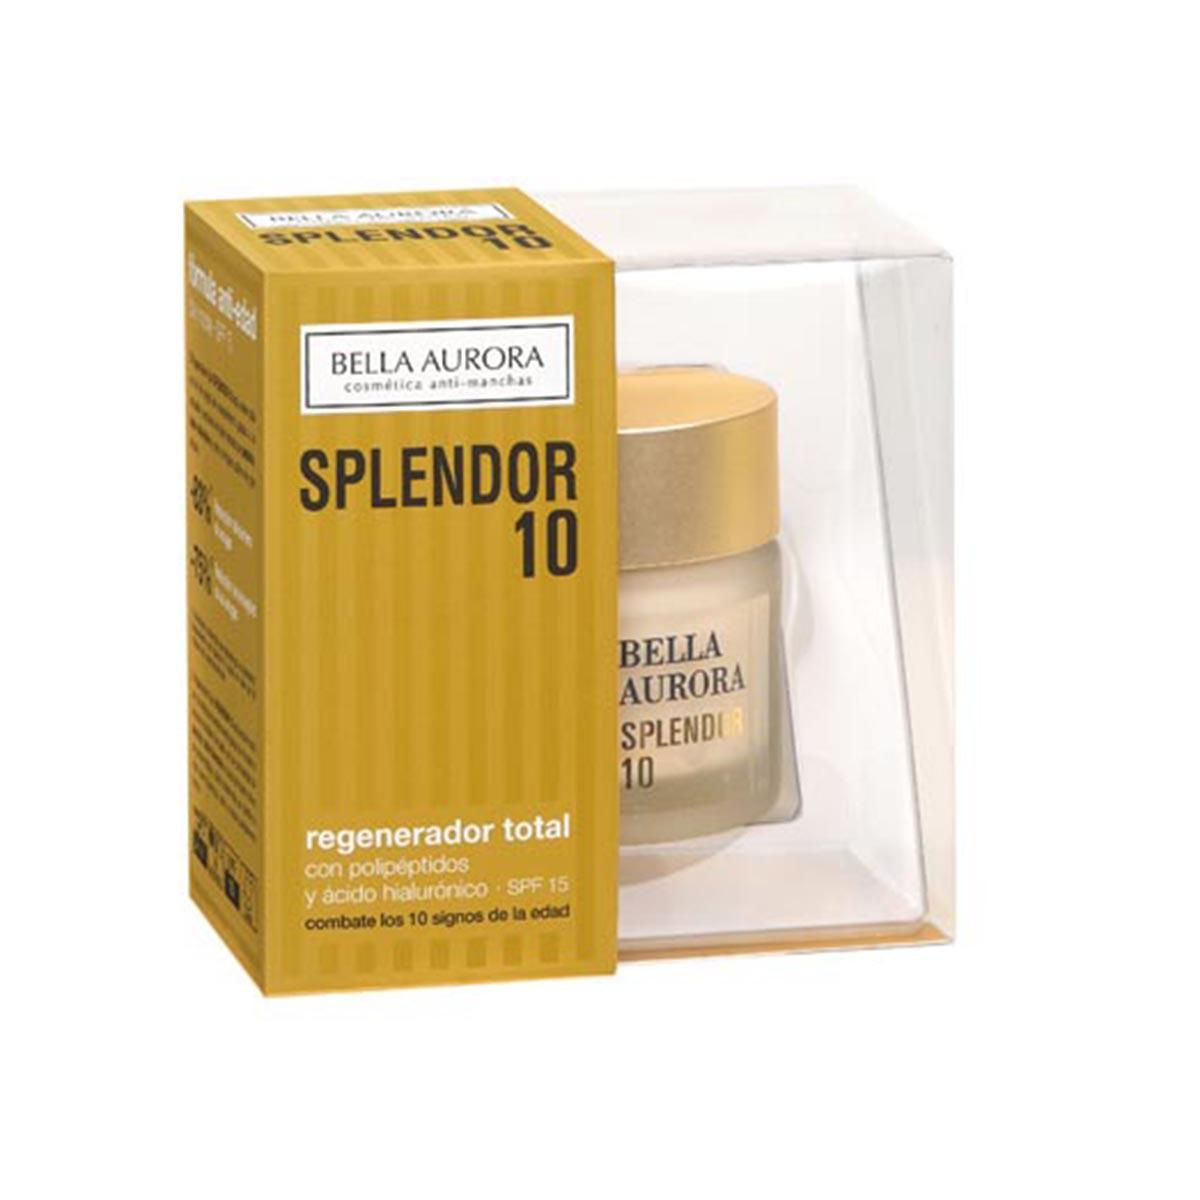 Bella aurora Splendor 10 Cream 50 ml